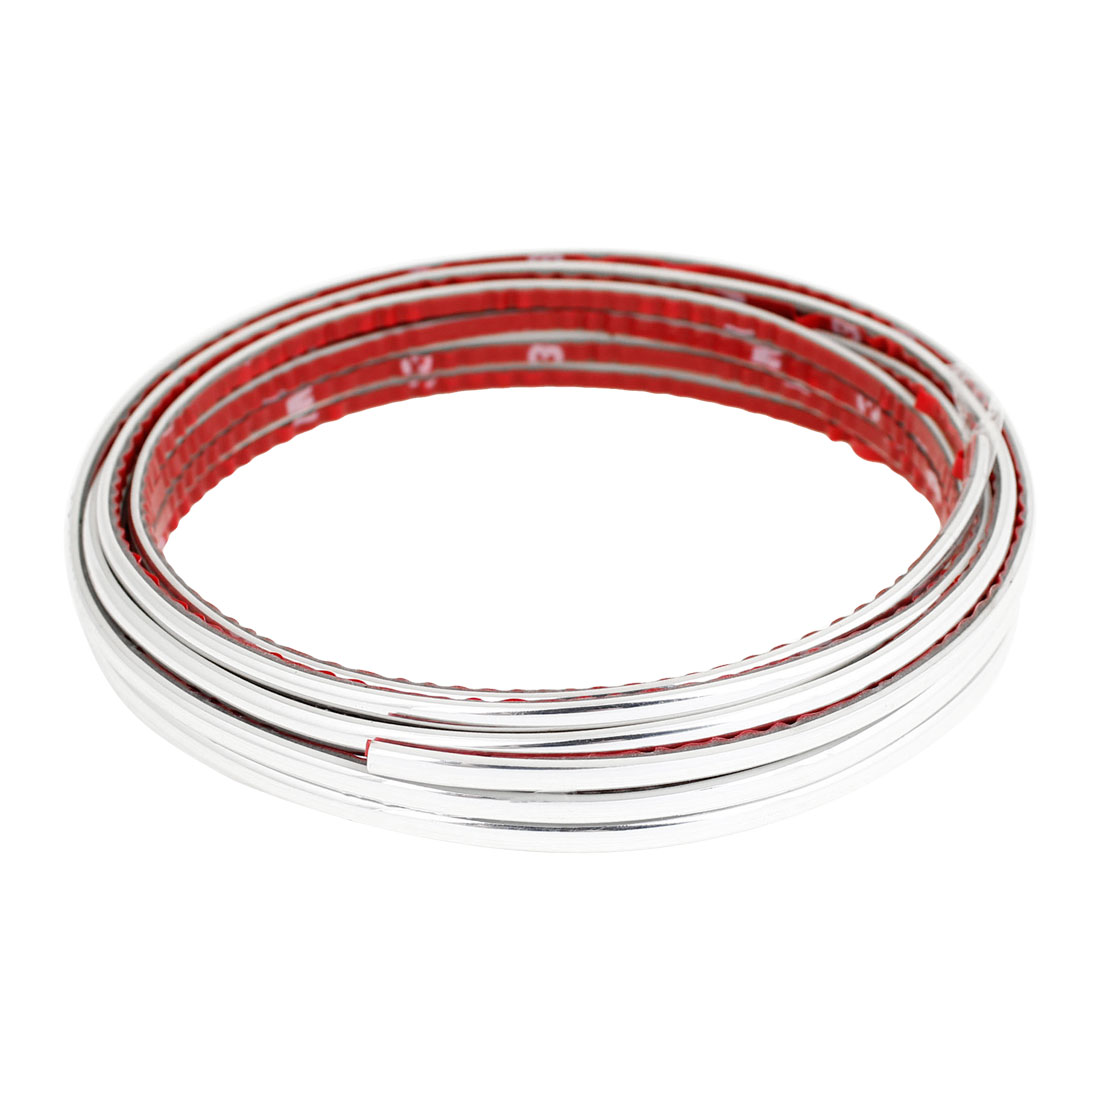 Silver Tone Car Decorative Moulding Trim Strip Molding Line 4mm x 3 Meters